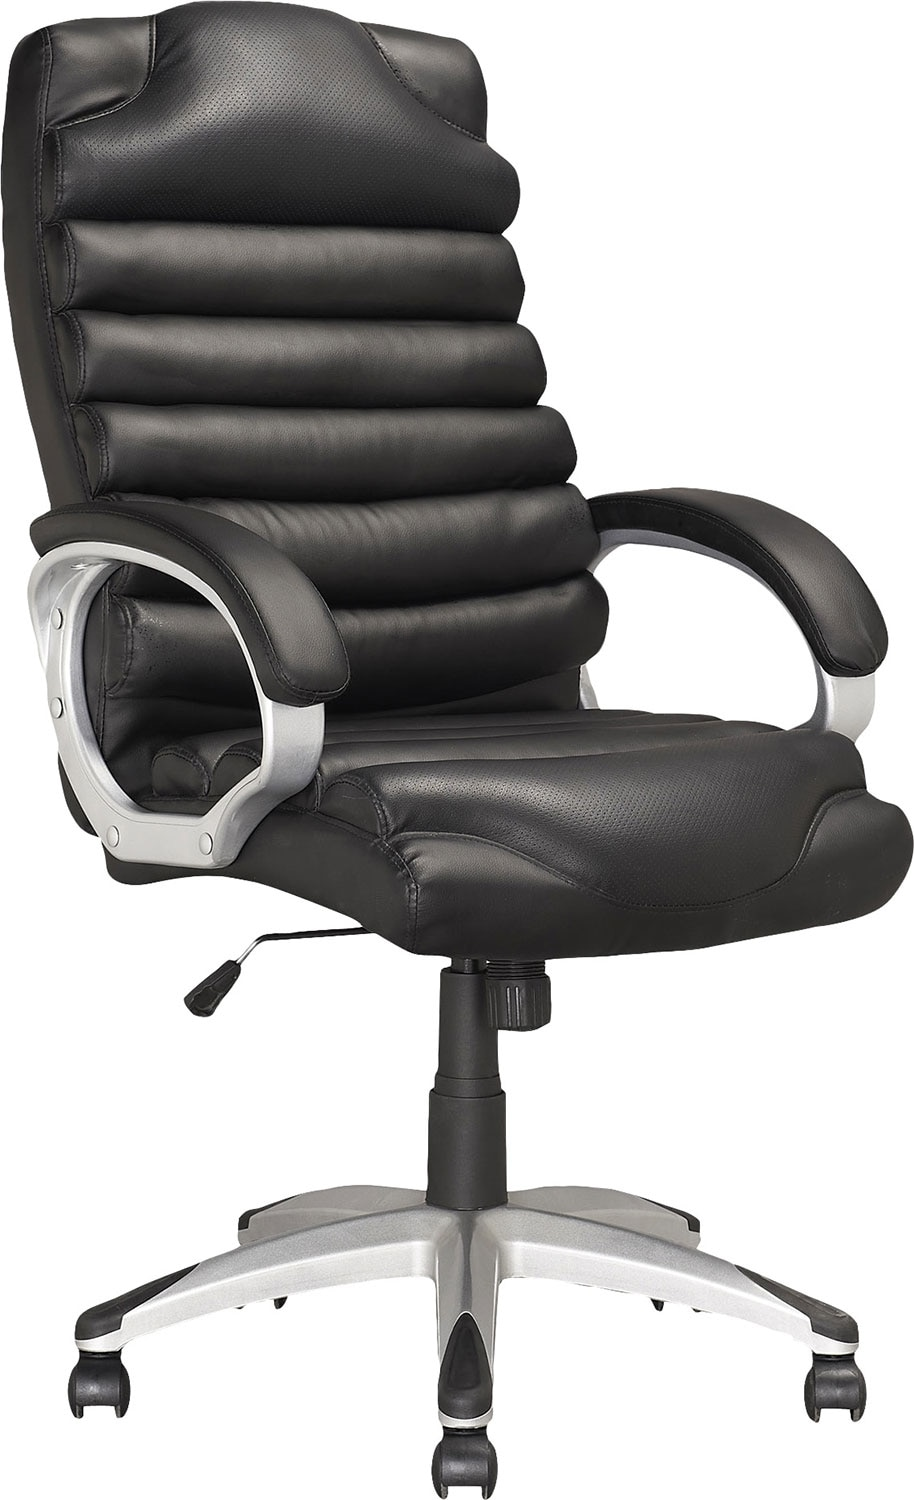 Sacramento Foam-Padded Leatherette Executive Office Chair